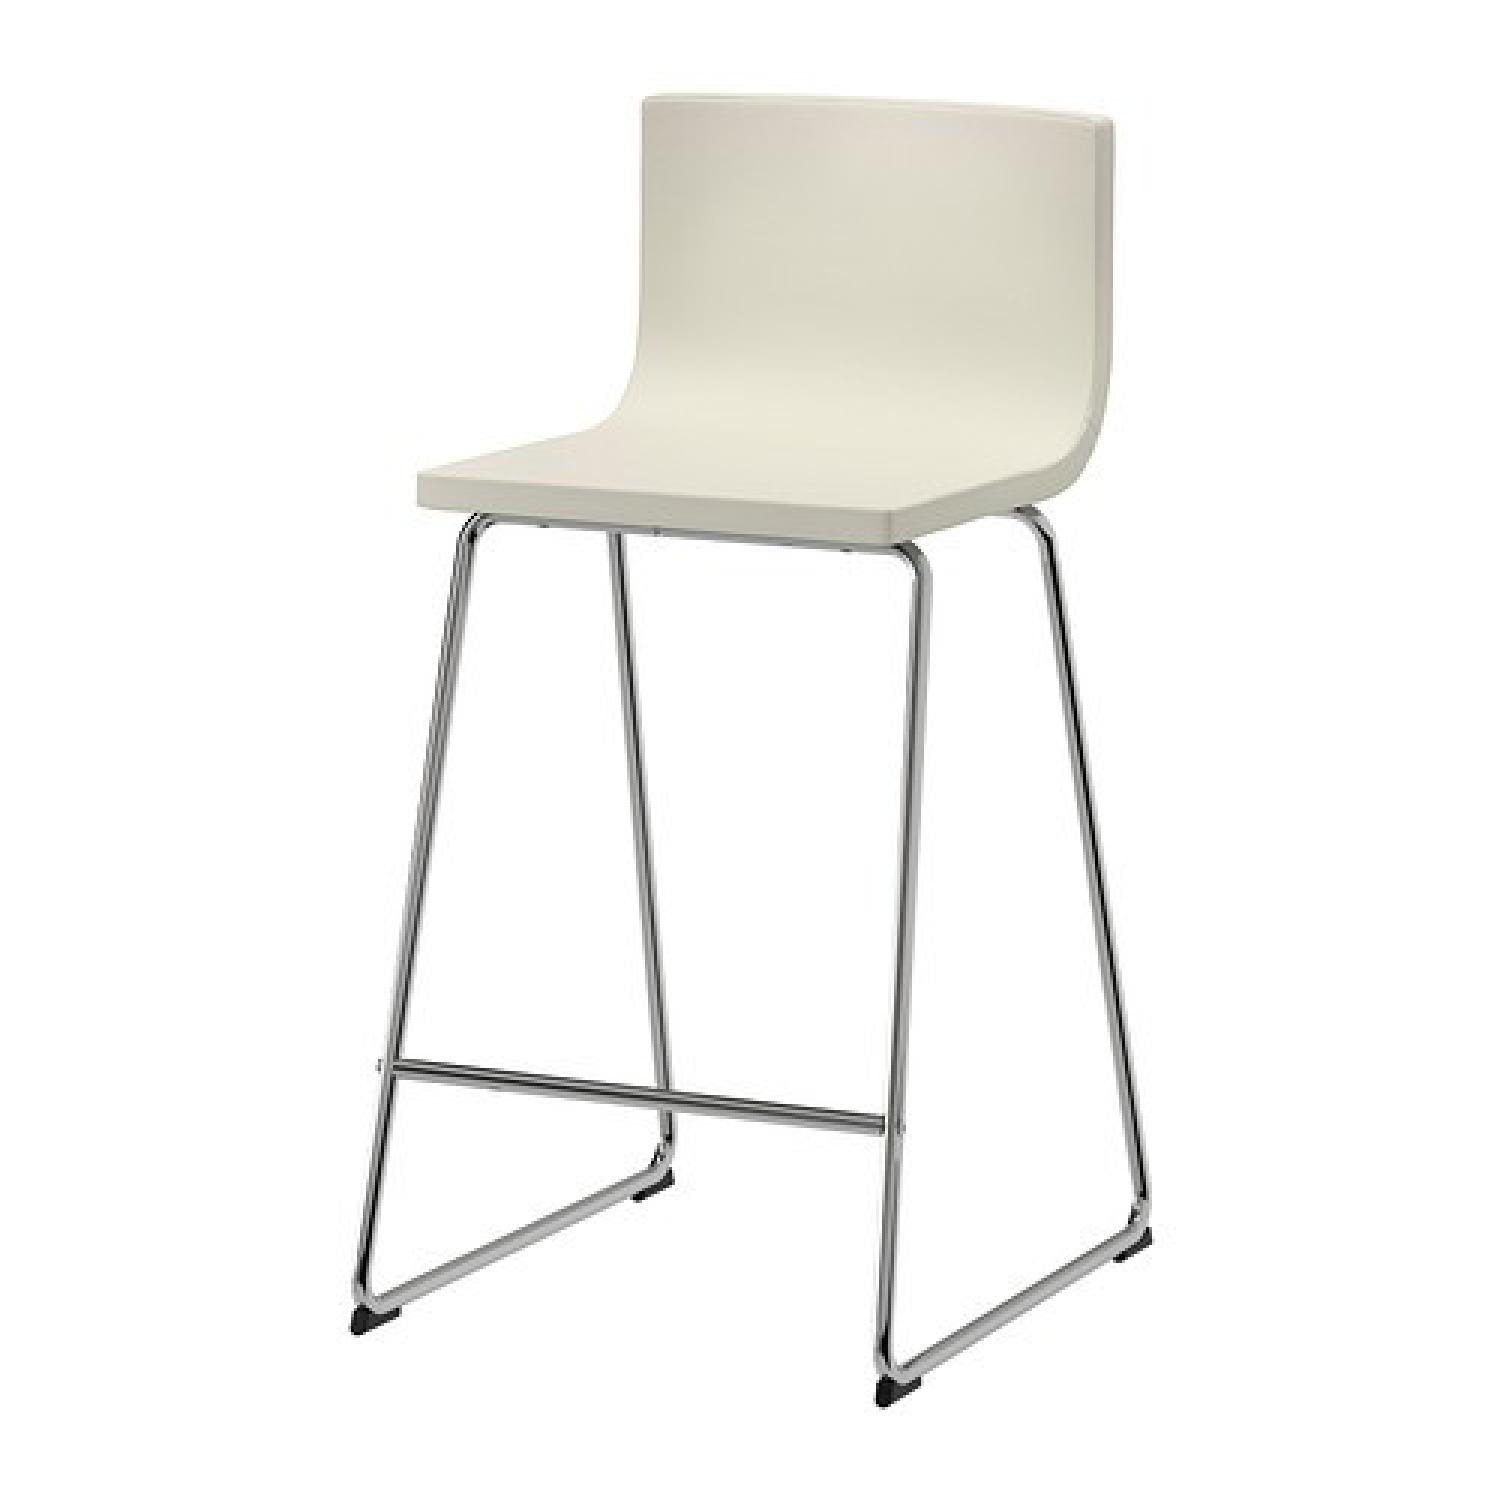 Ikea Bernhard White Leather Bar Stools w Backrest AptDeco